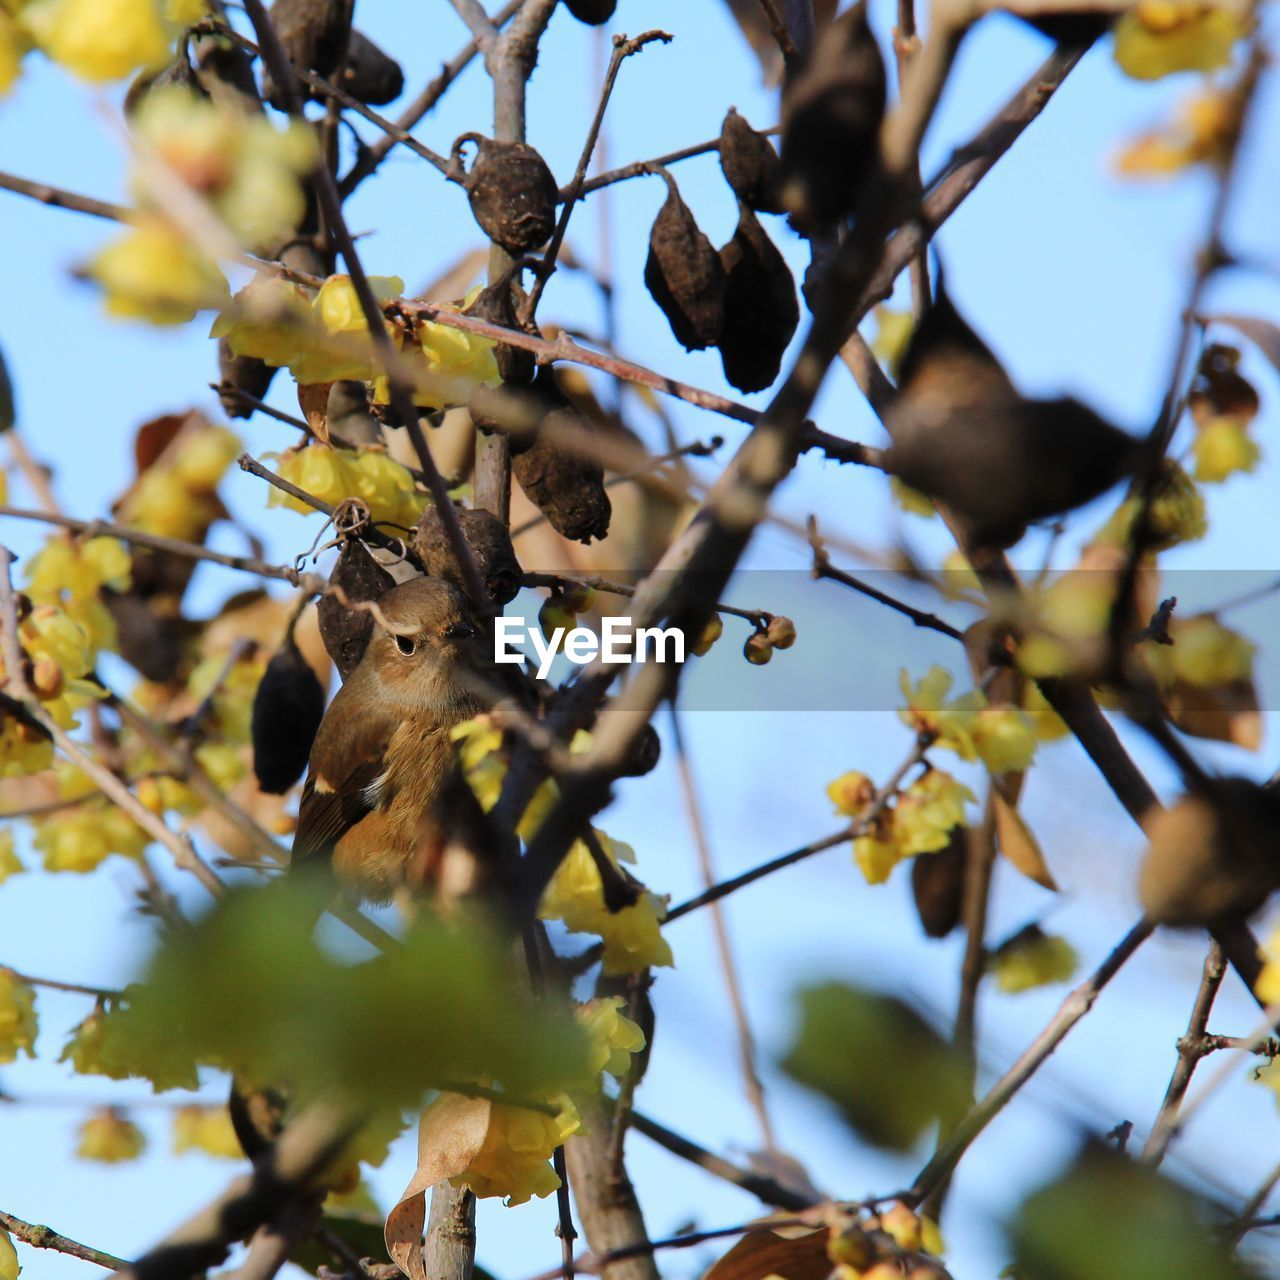 animal themes, low angle view, tree, plant, animal, branch, animal wildlife, one animal, animals in the wild, vertebrate, no people, growth, day, nature, selective focus, mammal, sky, bird, outdoors, focus on foreground